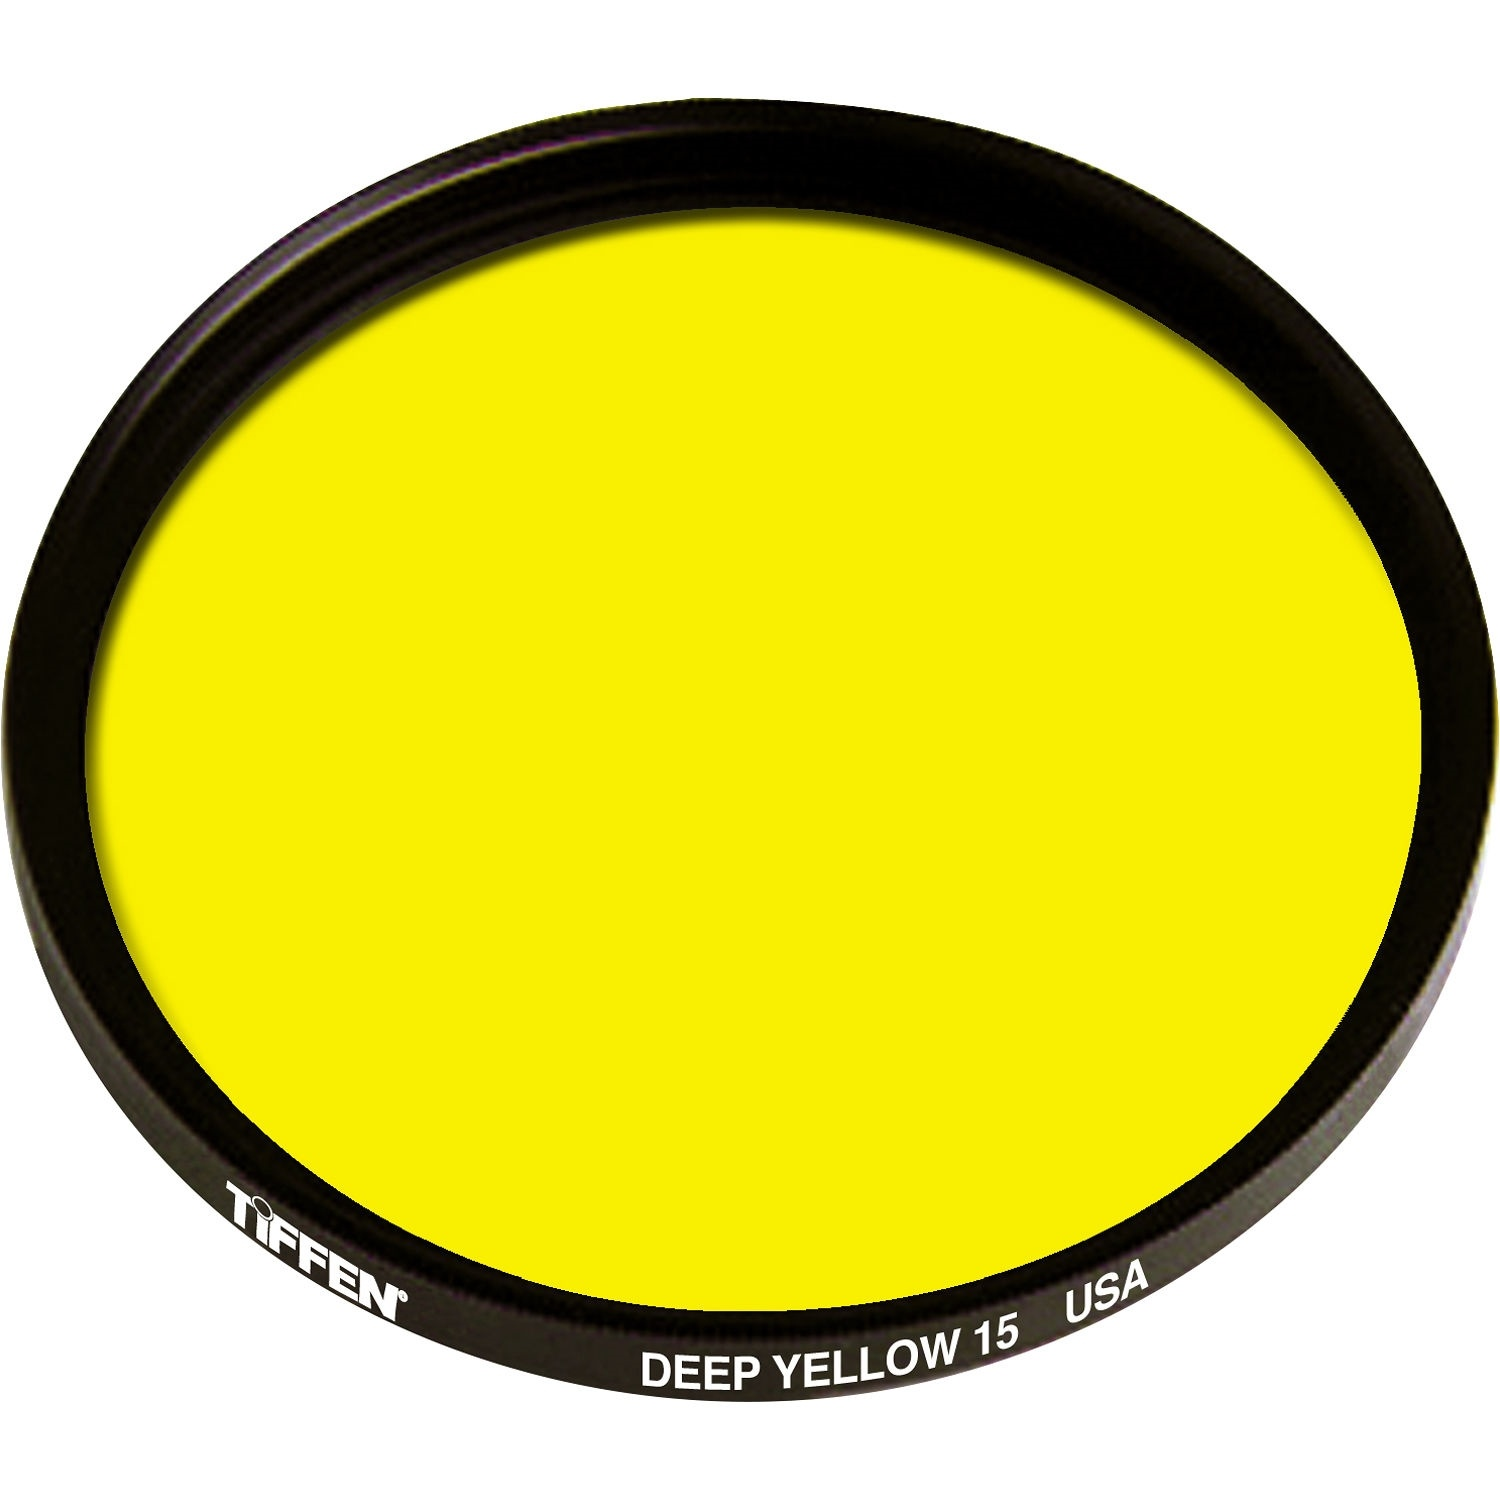 Tiffen 67mm Deep Yellow 15 Glass Filter for Black & White Film